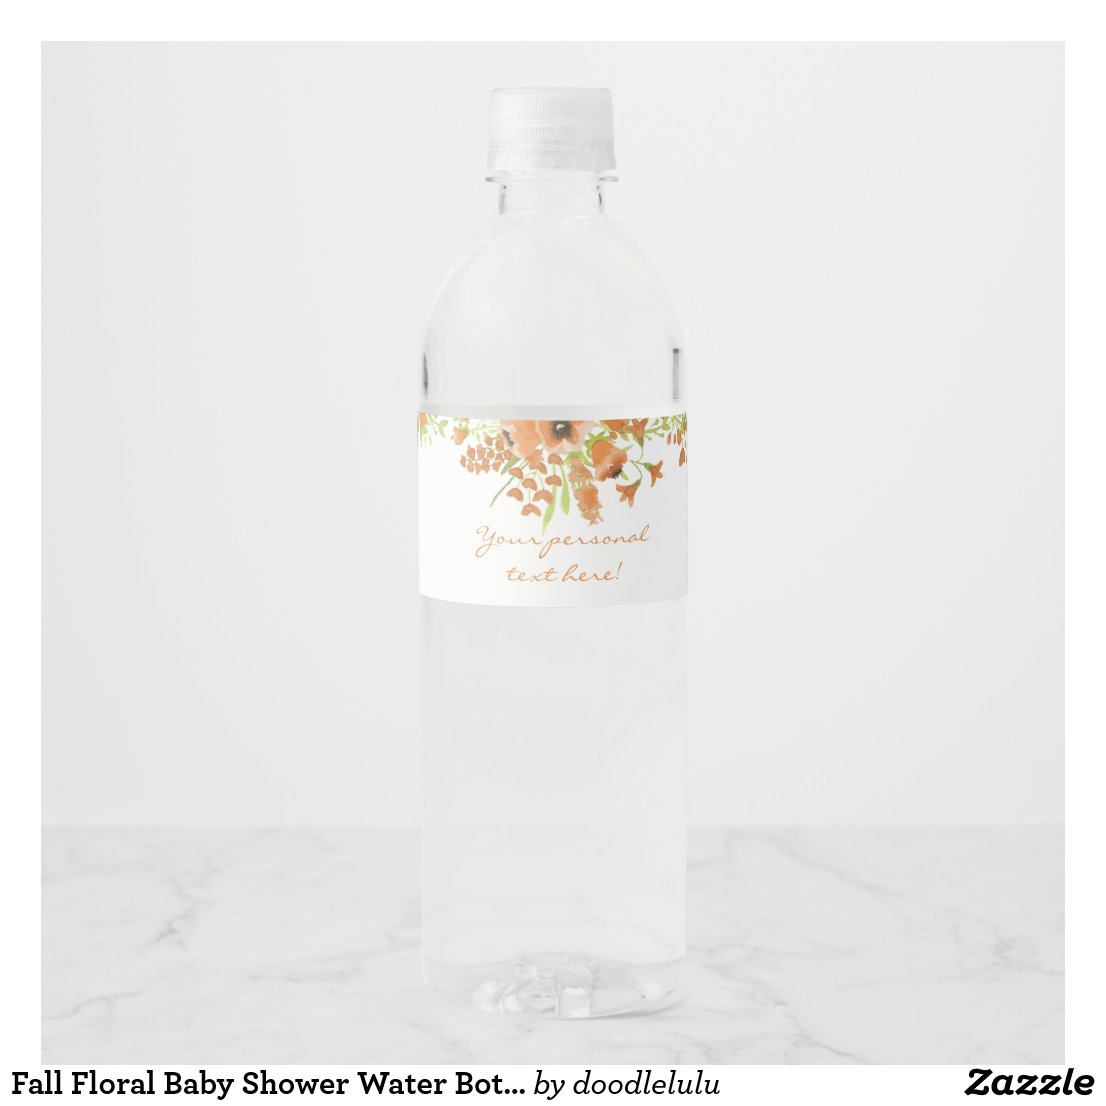 Fall Floral Baby Shower Water Bottle Label